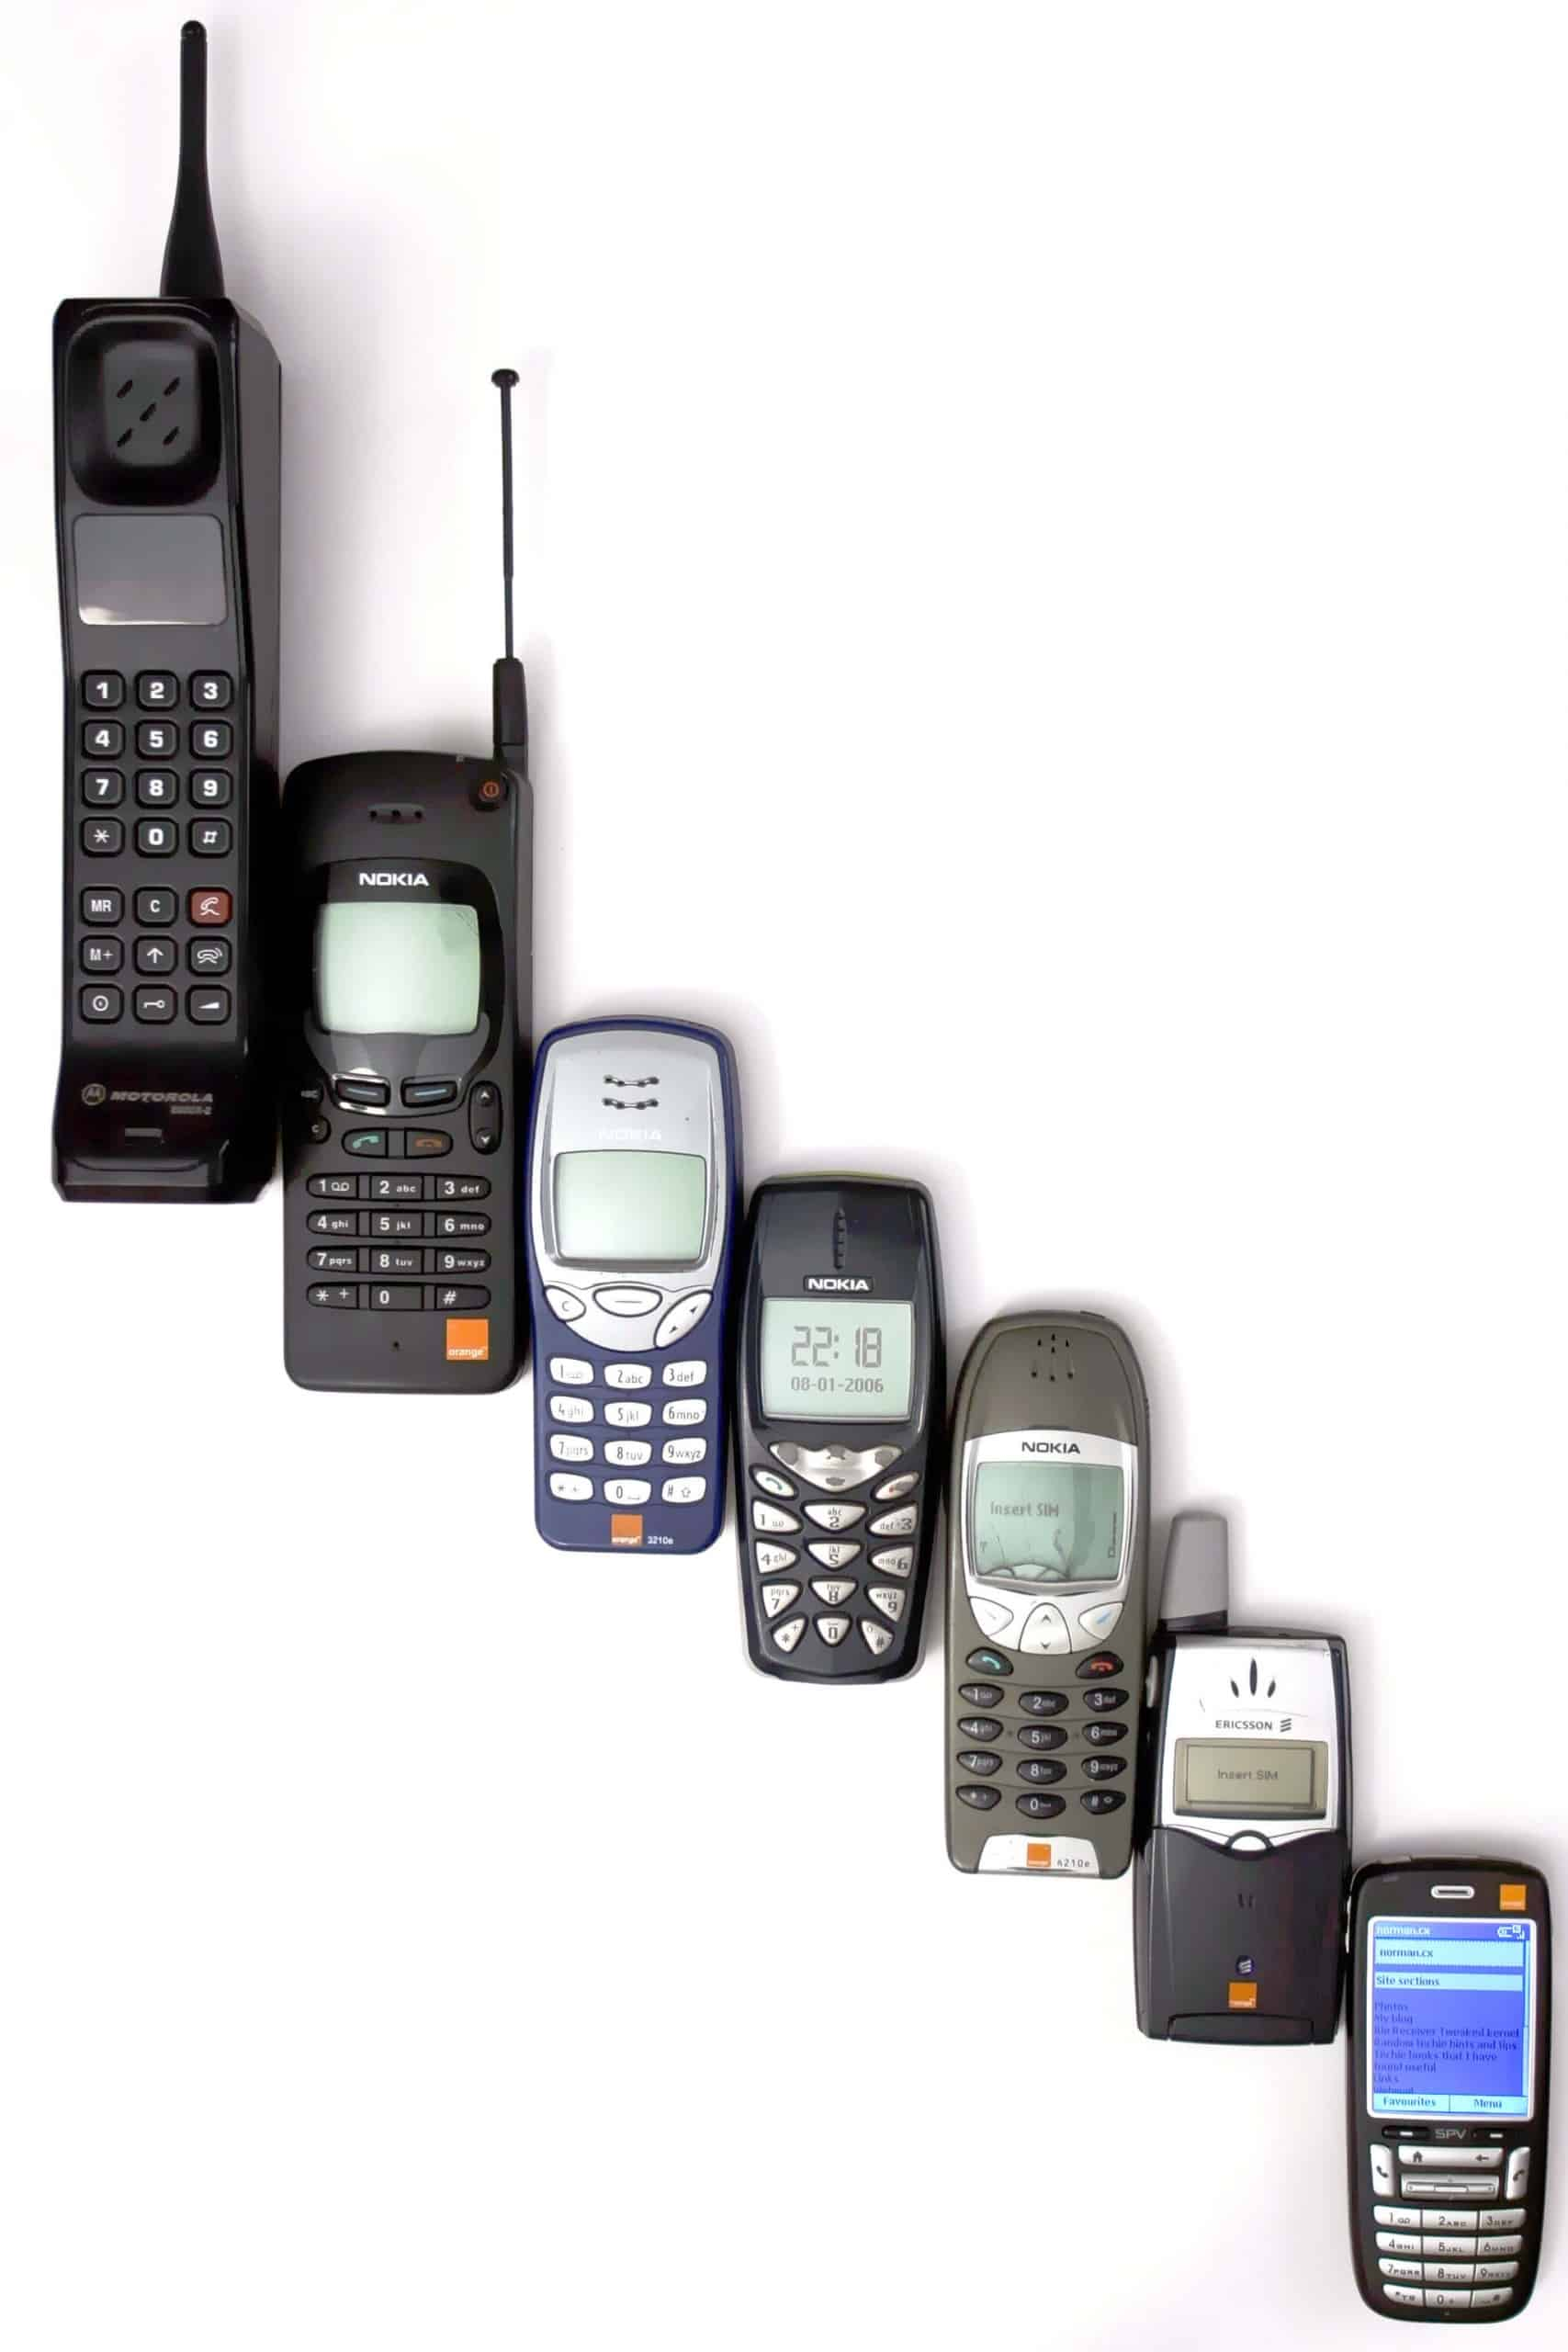 A photo of multiple mobile phones to represent the technological progression